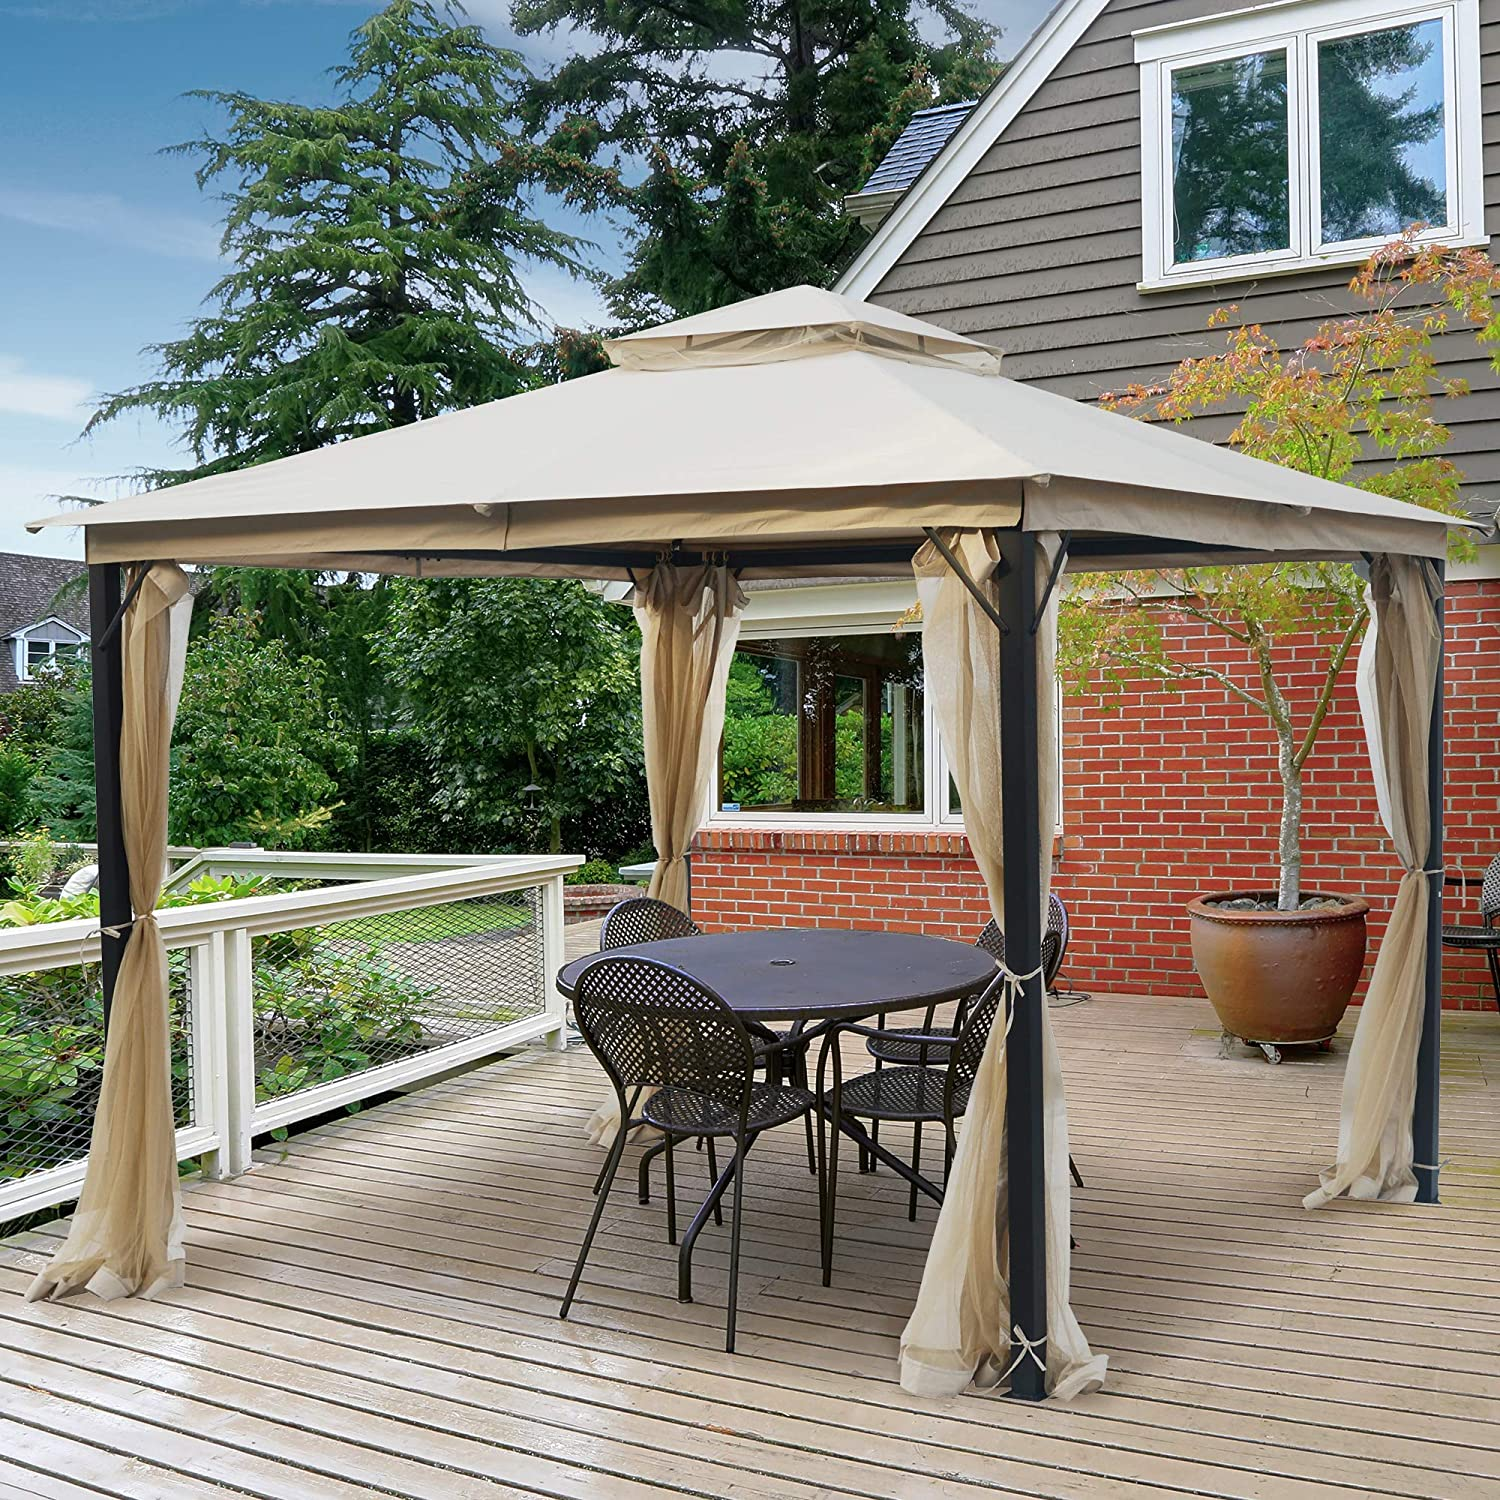 AsterOutdoor 10x10 Outdoor Gazebo for Patios Canopy for Shade and Rain with Mosquito Netting, Soft Top Metal Frame Gazebo for Lawn, Backyard and Deck, 99% UV Rays Block, CPAI-84 Certified, Beige